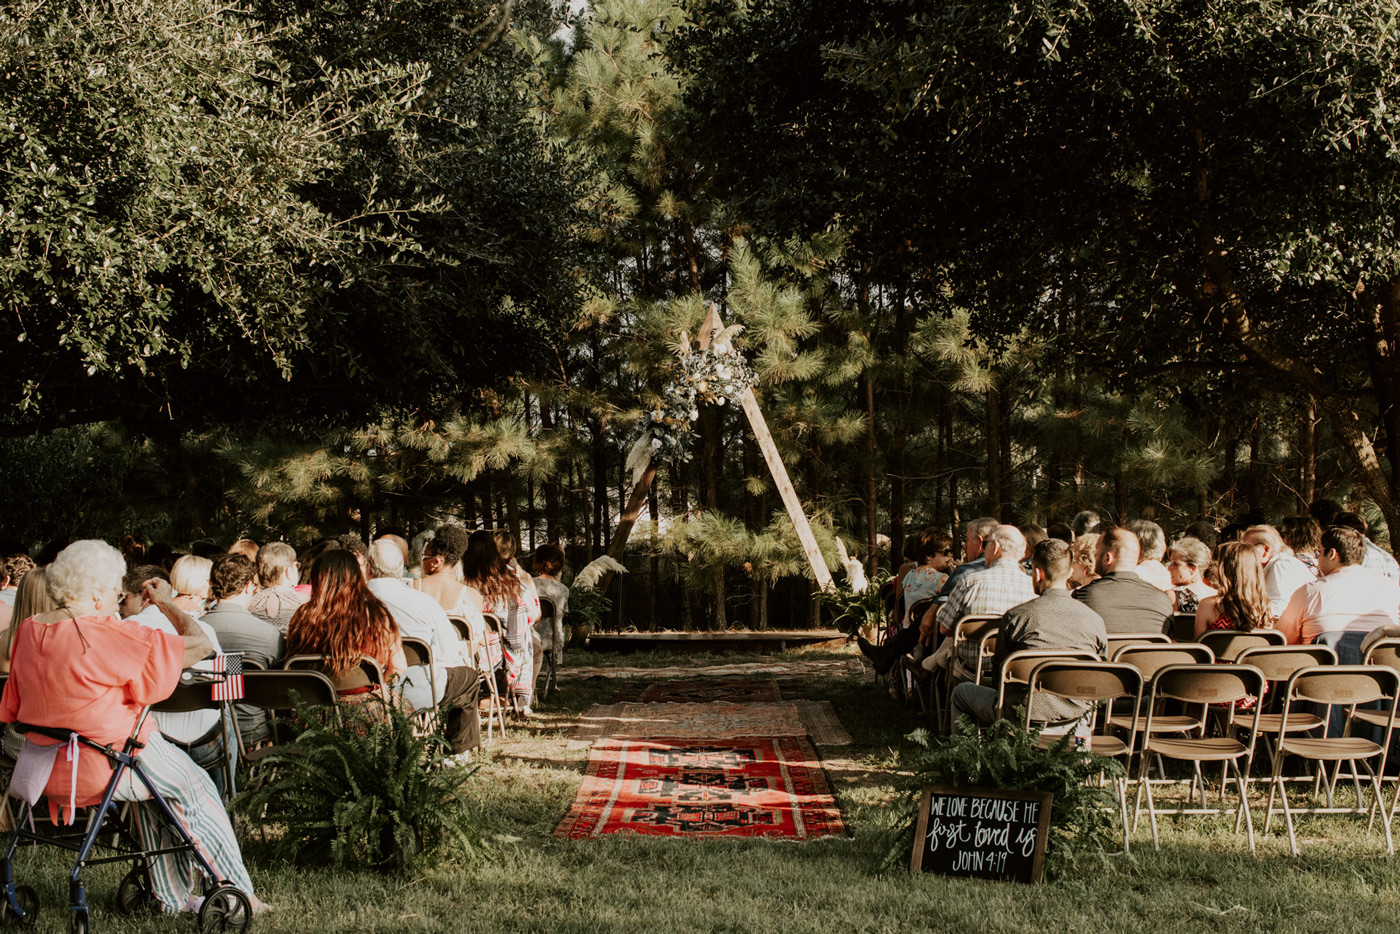 Bohemian wedding decor at backyard wedding ceremony